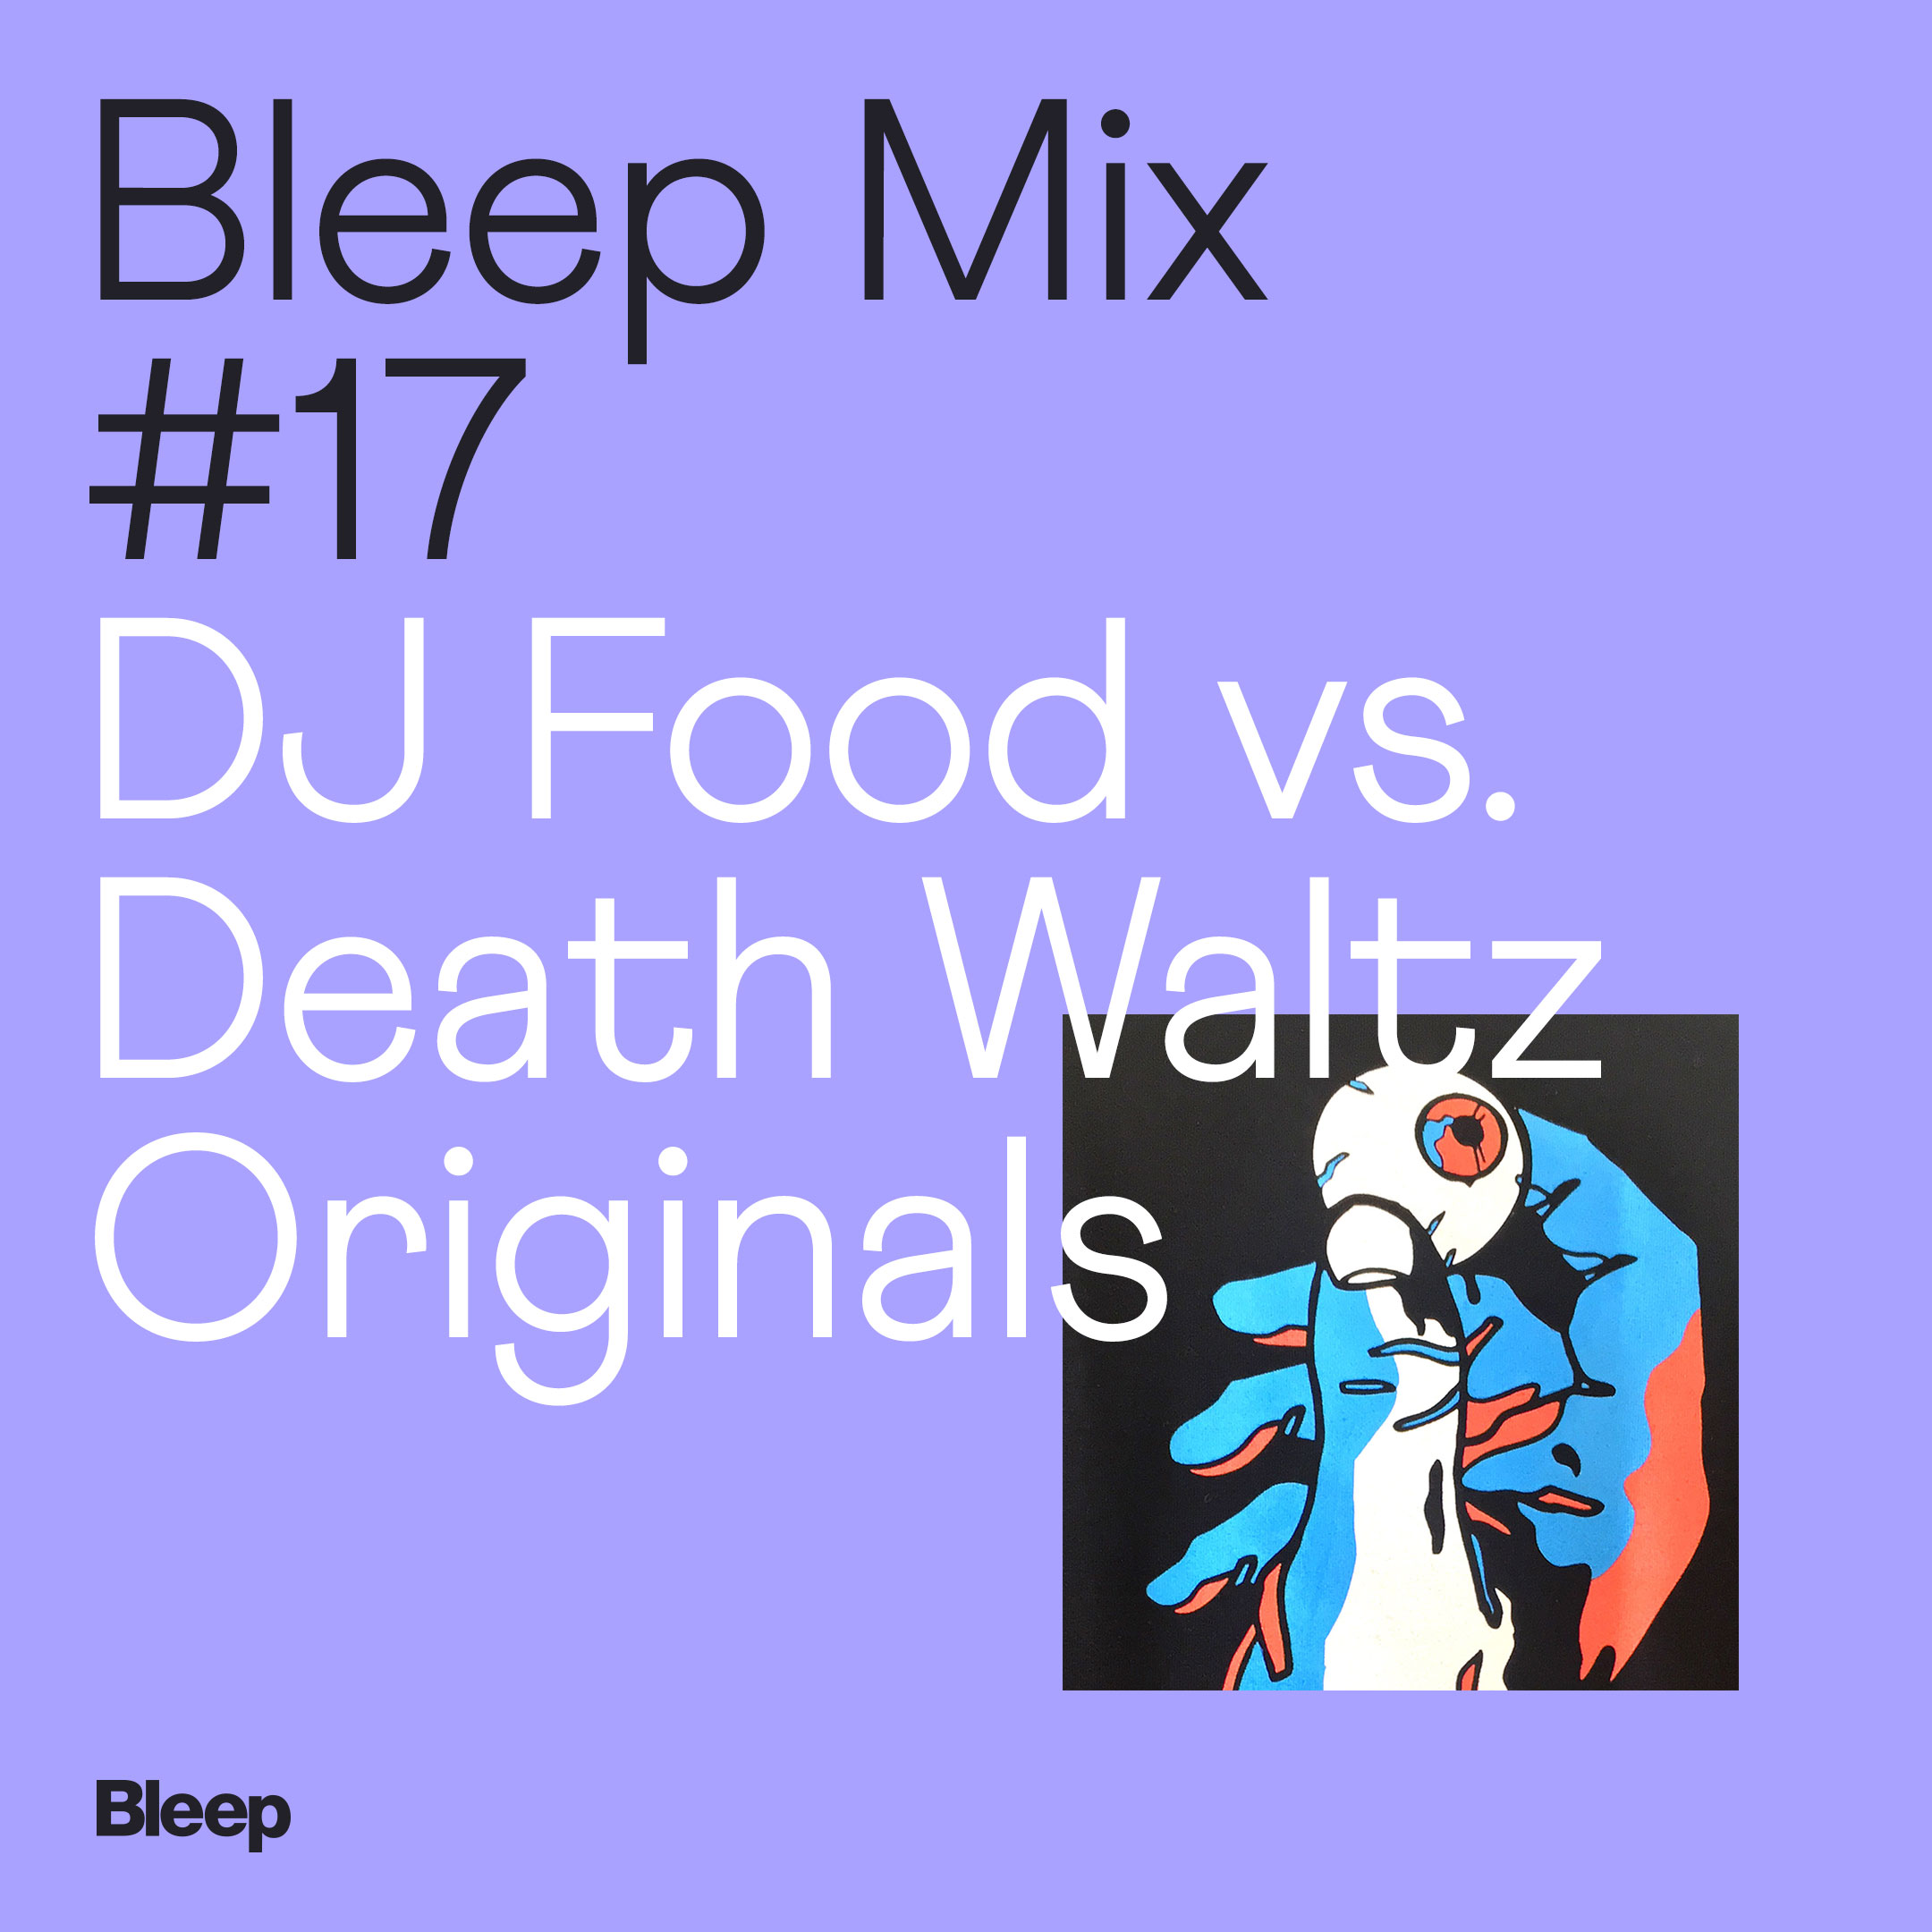 Bleep Mix #17 - DJ Food vs. Death Waltz Originals